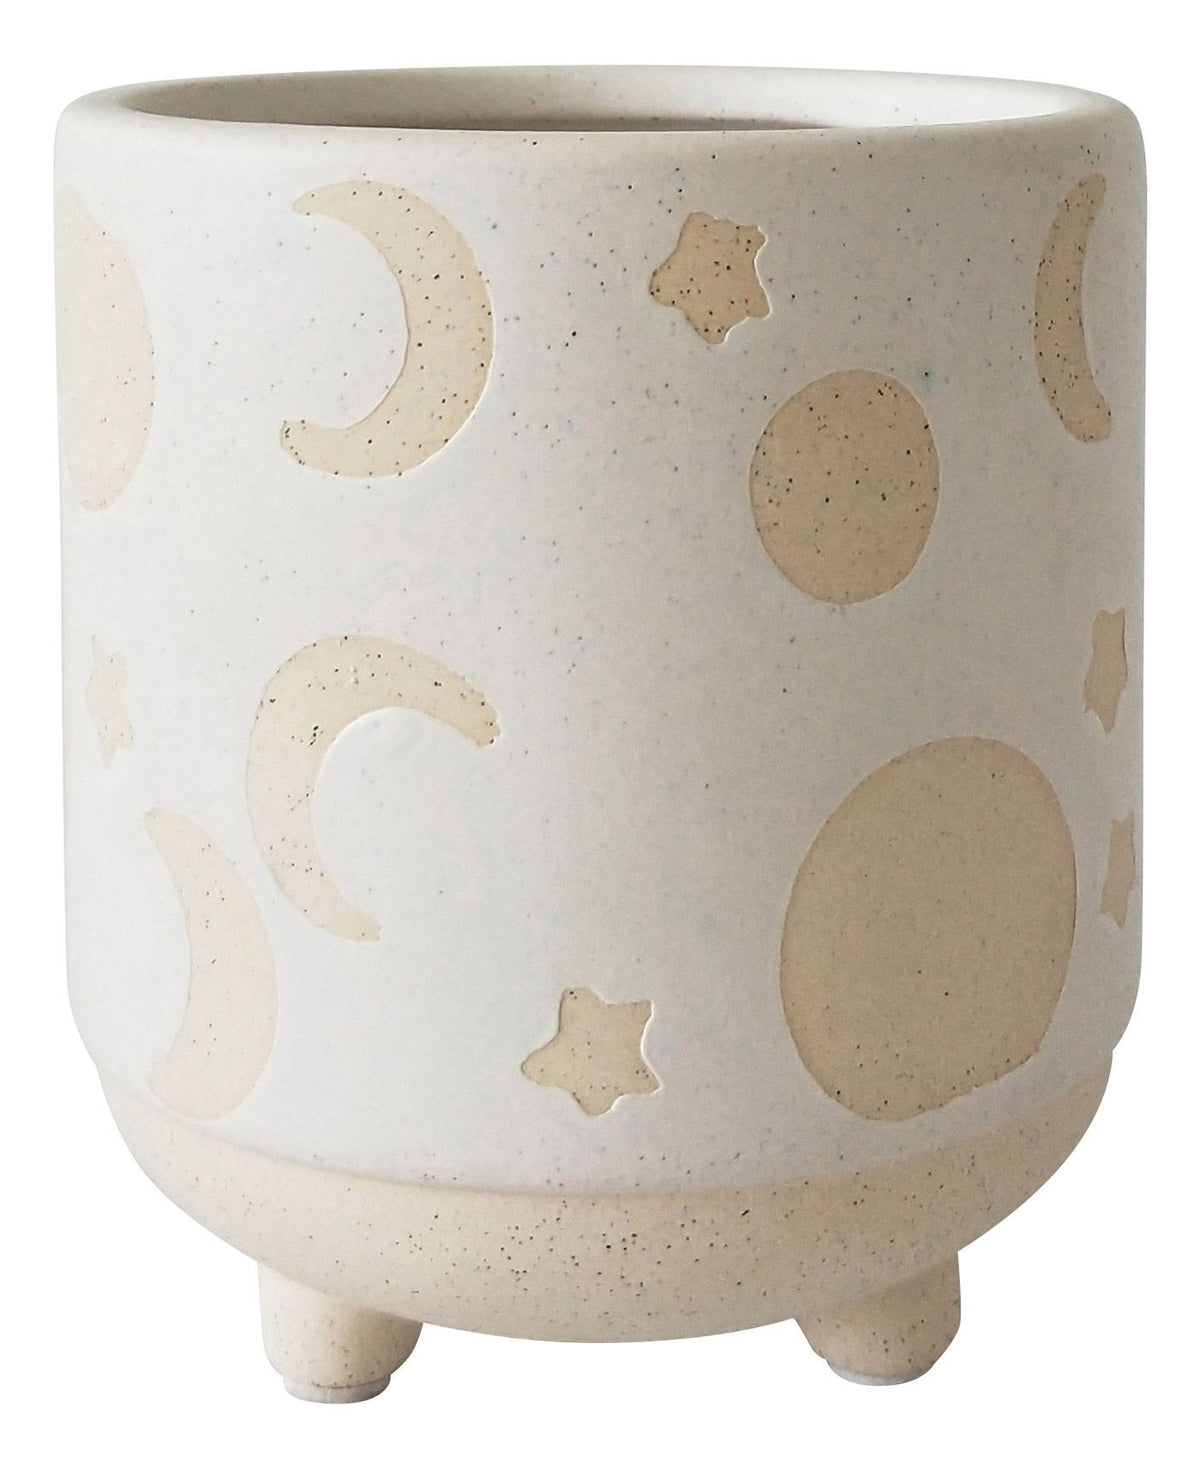 Elemental Moon Planter - White & Sand